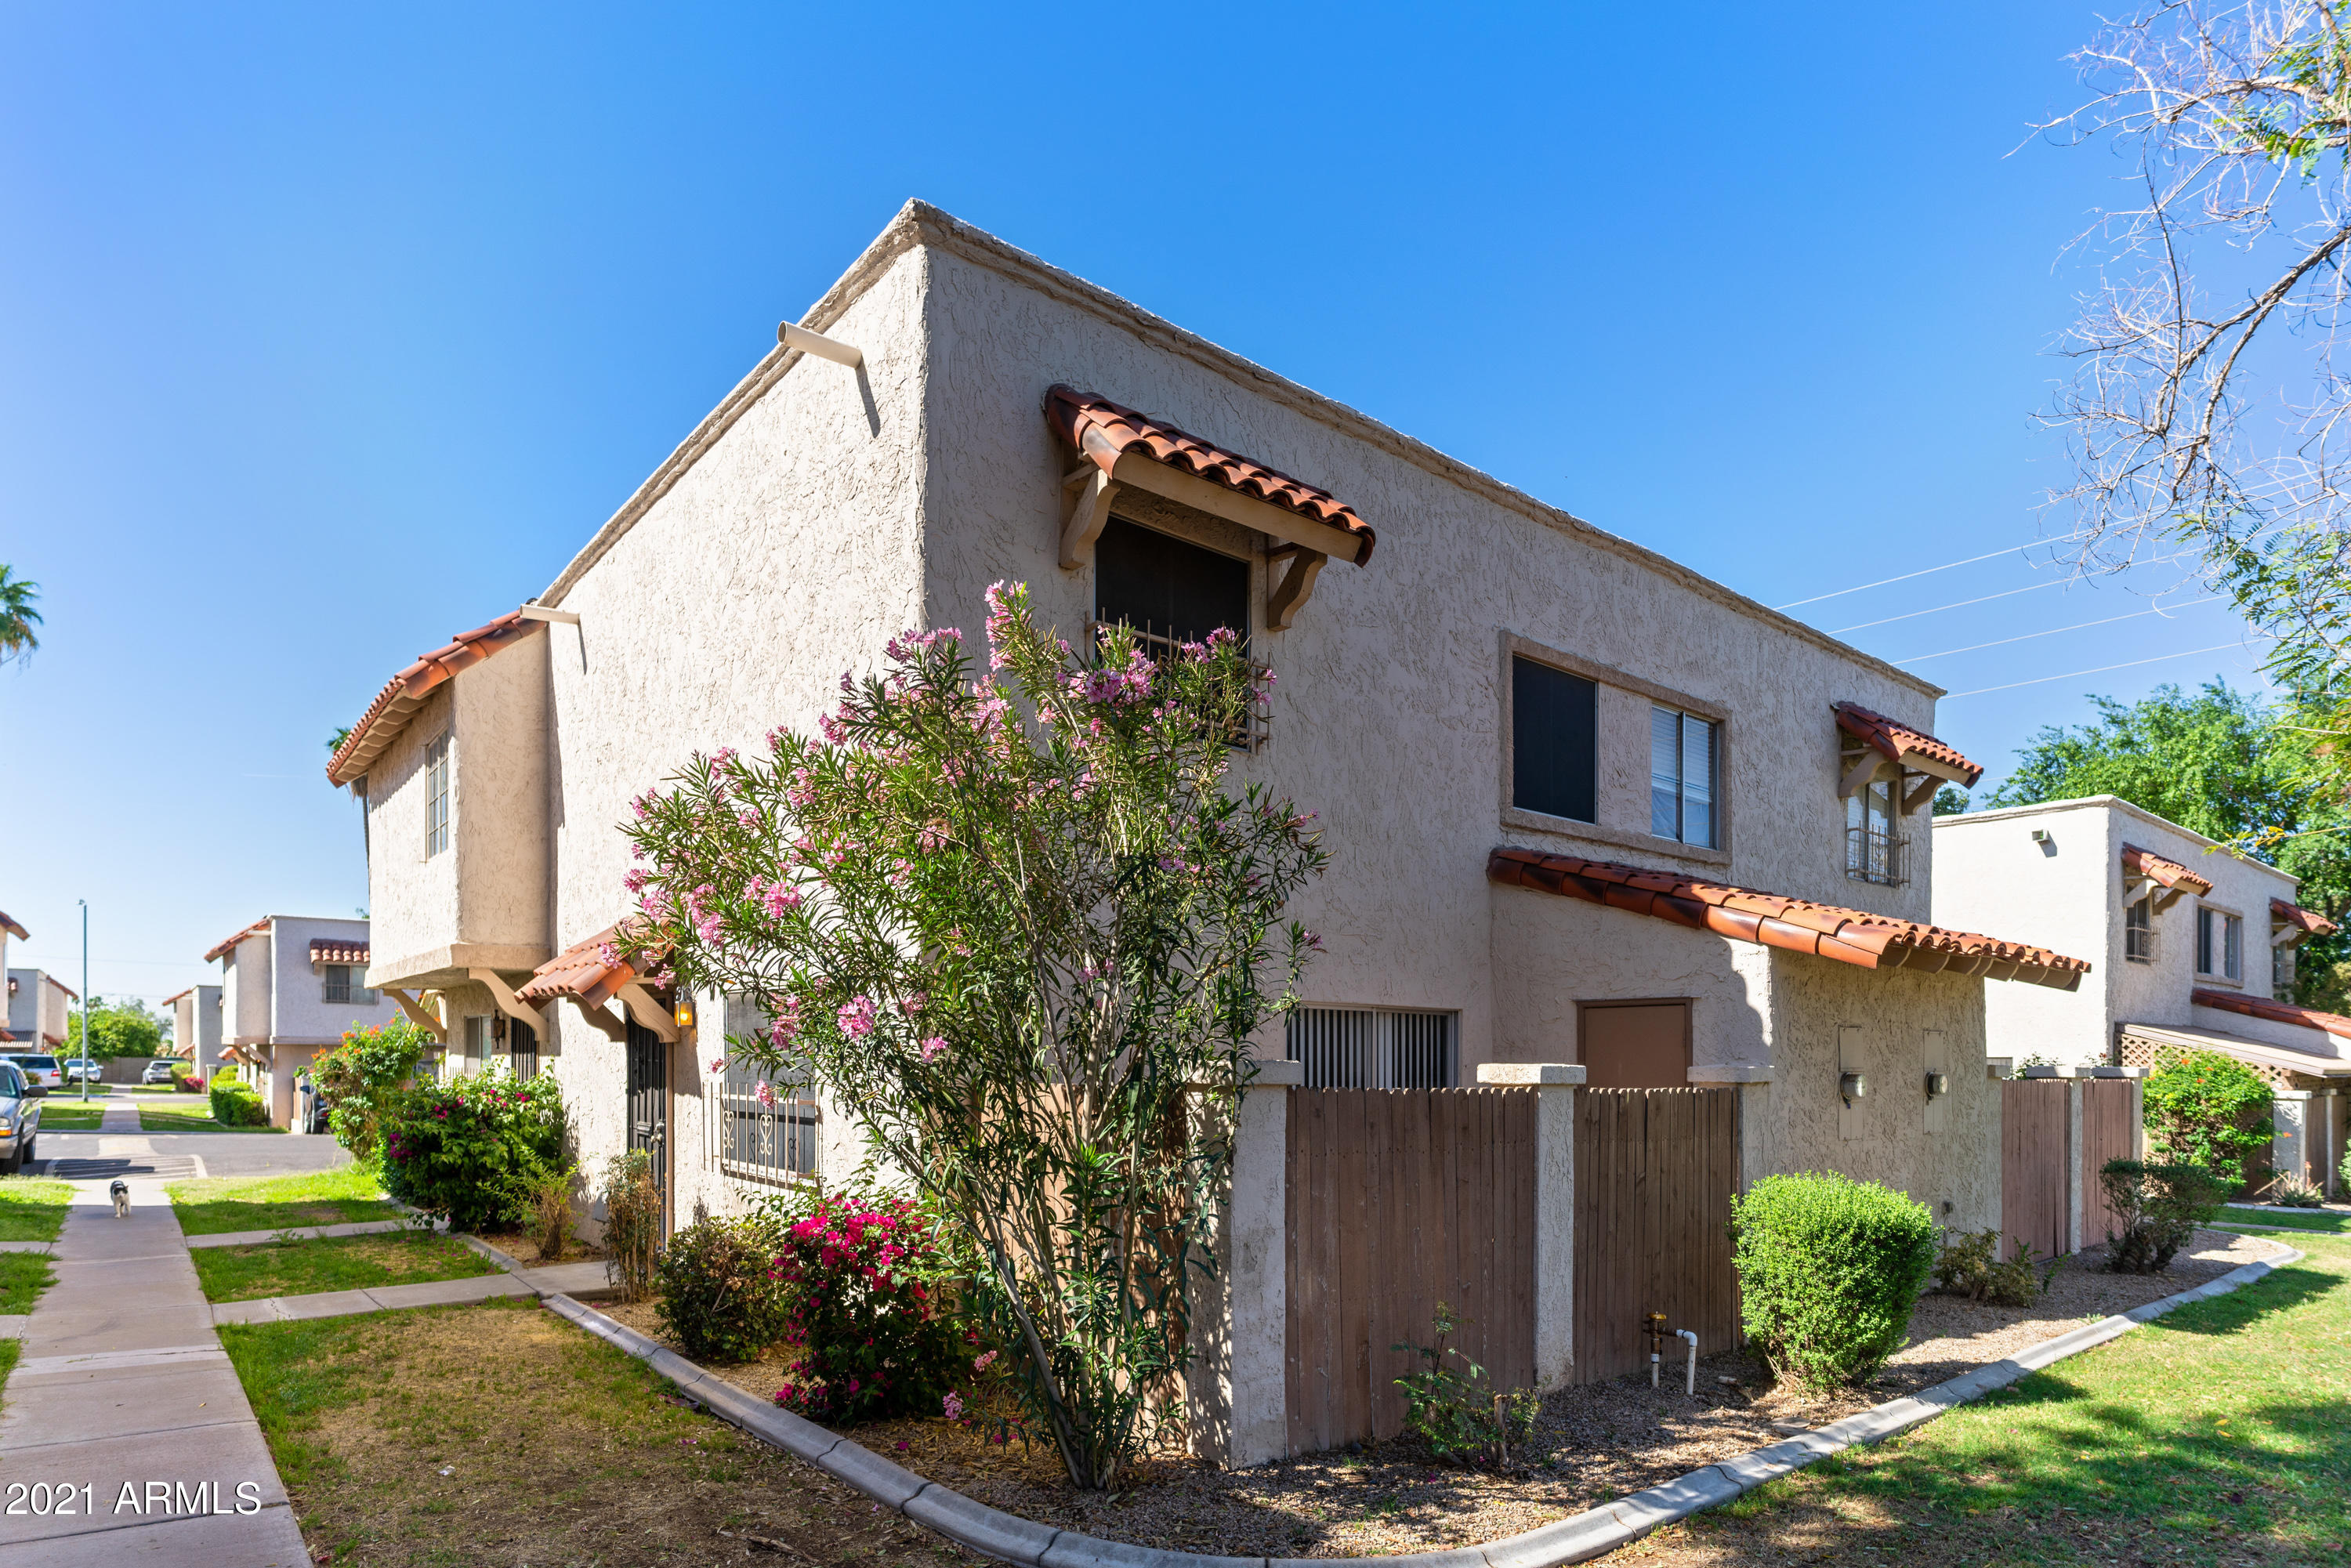 If you are looking for a new home or investment property in a popular area near restaurants, shopping and easy access to the freeway, this may be the one for for you! This upgraded townhouse, in the Casas Del Norte subdivision, is a 2 bedroom, 1.5 bath gem. stainless steel appliances, dark quartz countertops, and subway tile backsplash. The outdoor patio sits off the living room and hosts the laundry closet with additional storage space. Enjoy a quiet community with lush trees and sparkling pool with mountain views.